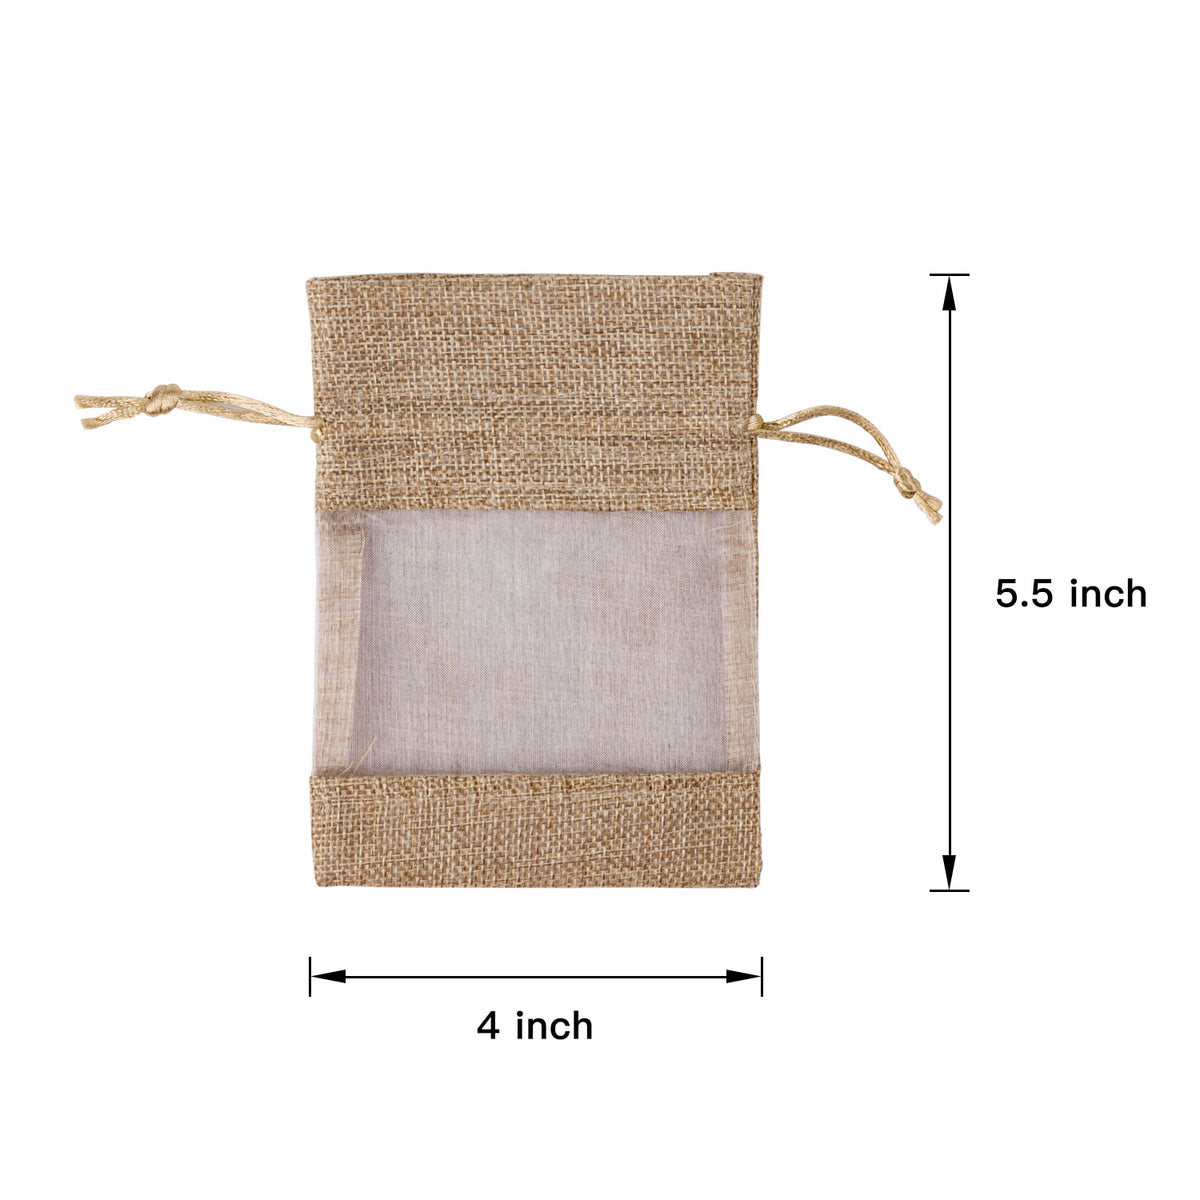 WRAPAHOLIC-Burlap-Drawstring-Gift-Bag-4 x 5.5 inch-Tan